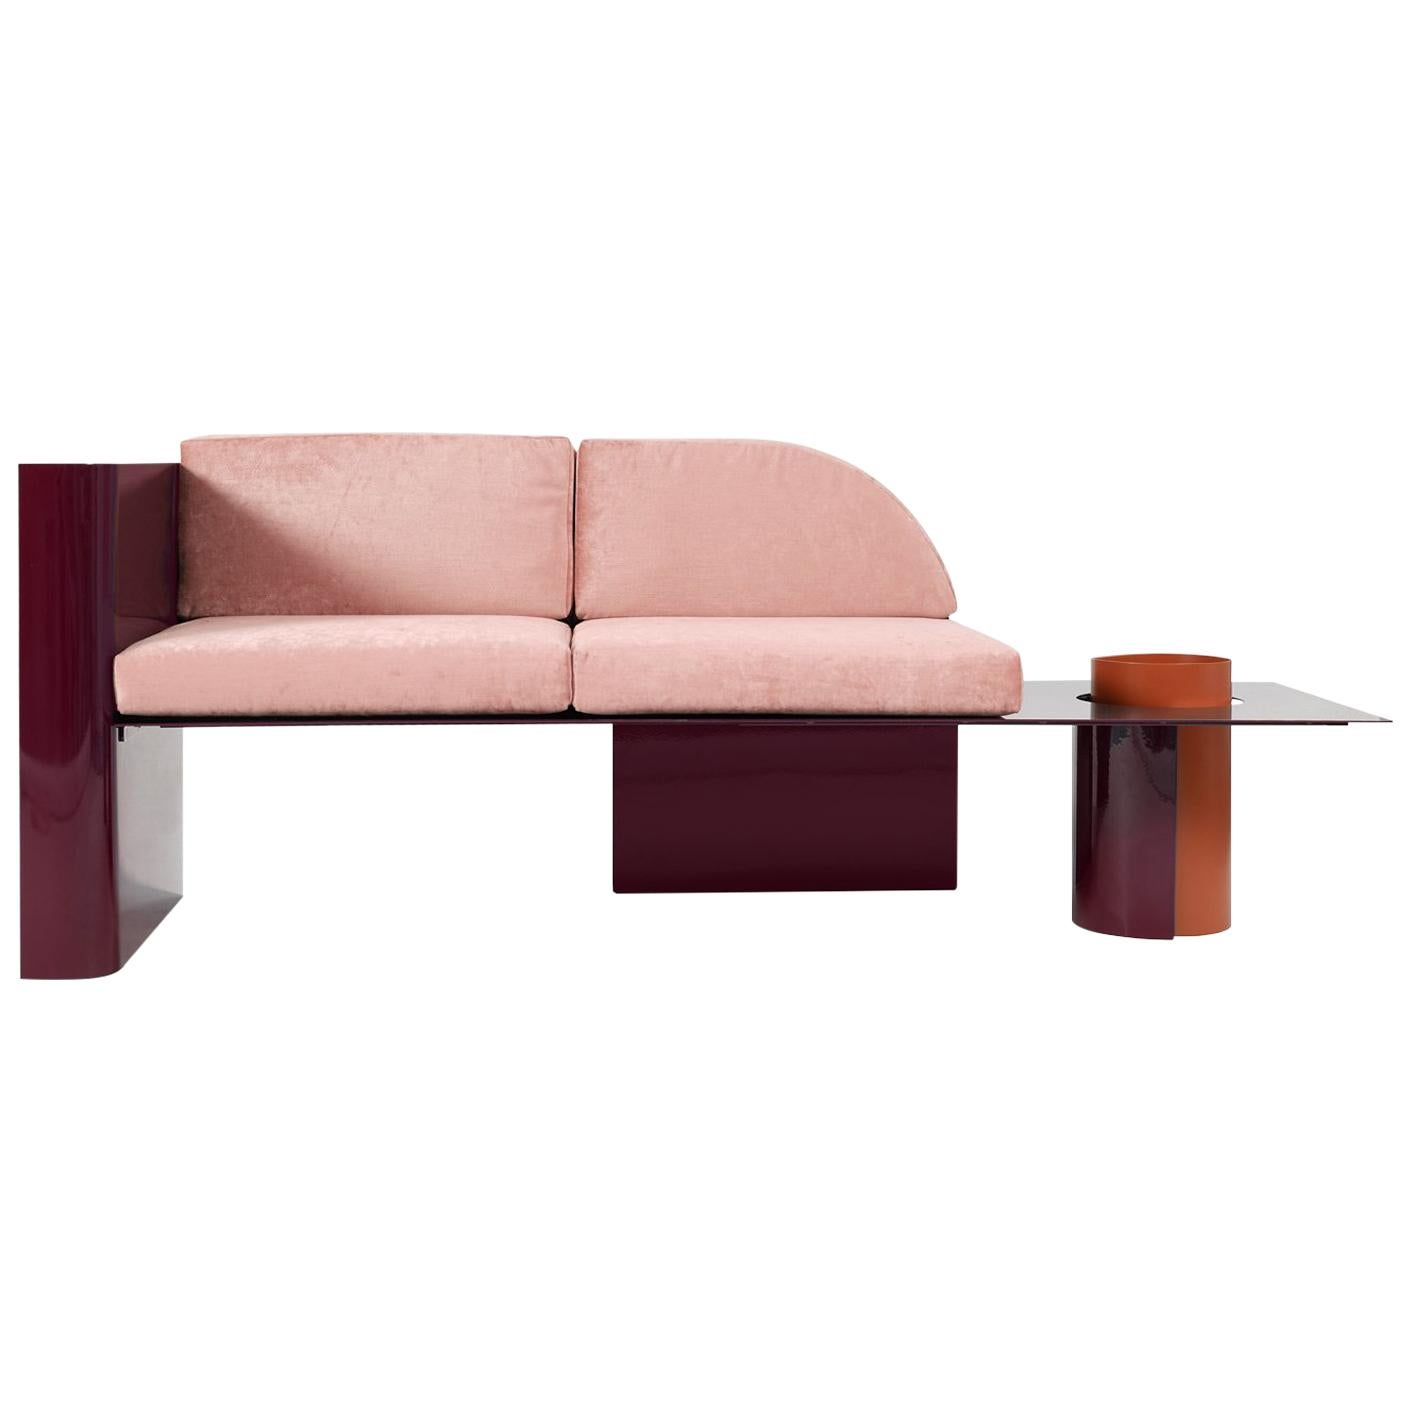 Burgundy Modern Sofa in Powder-Coated Steel with Planter Side Table